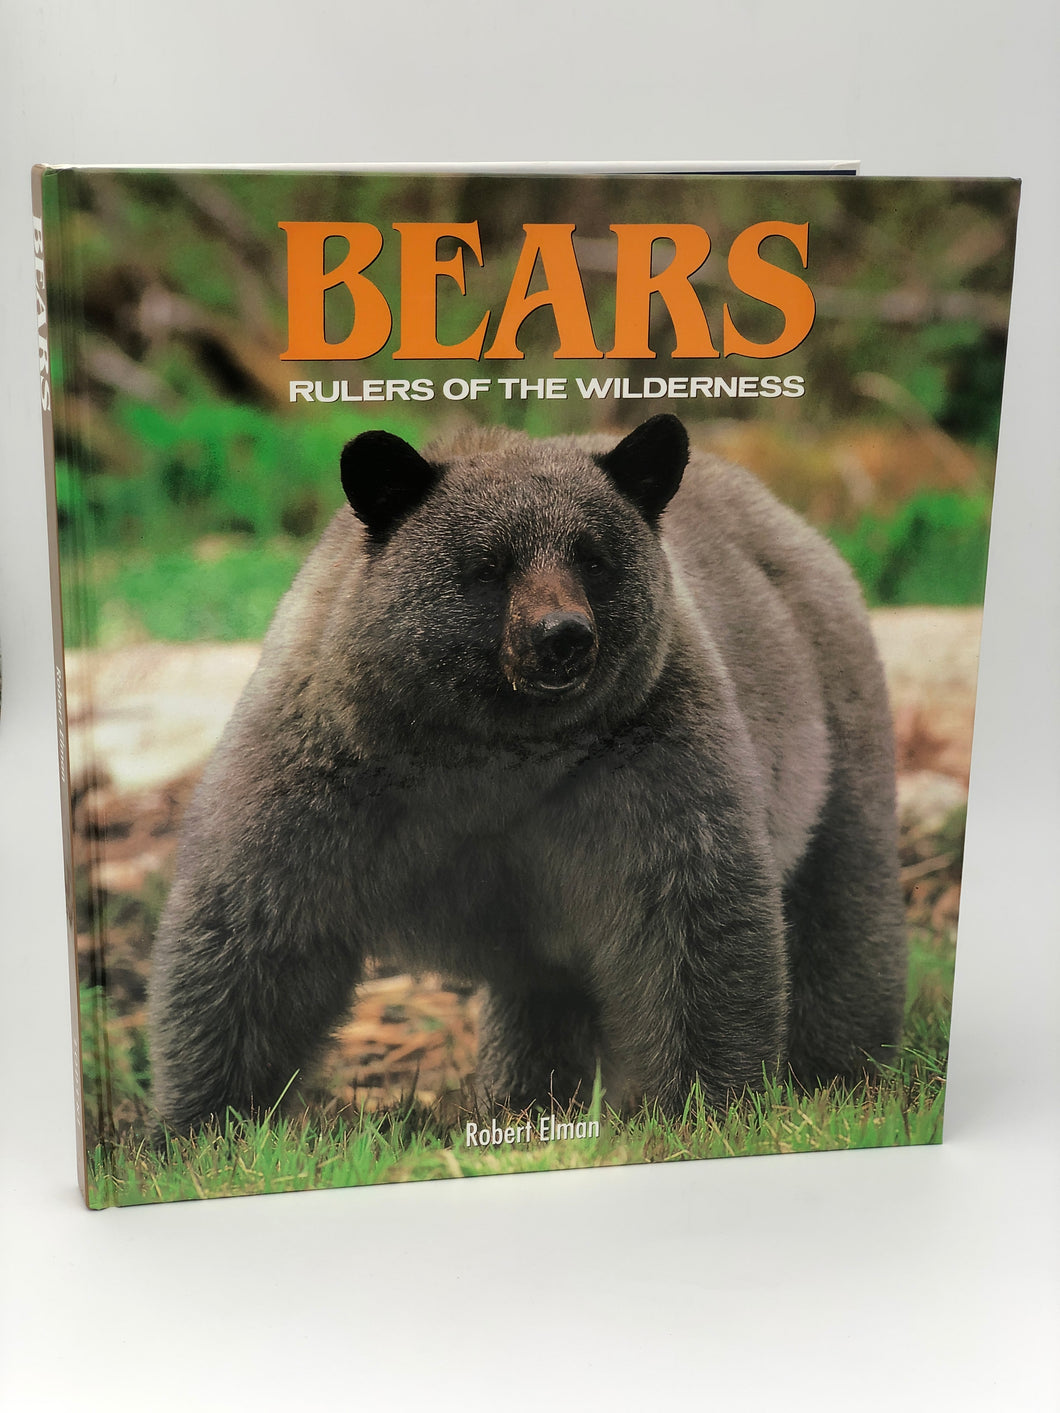 Bears - Rulers of the Wilderness